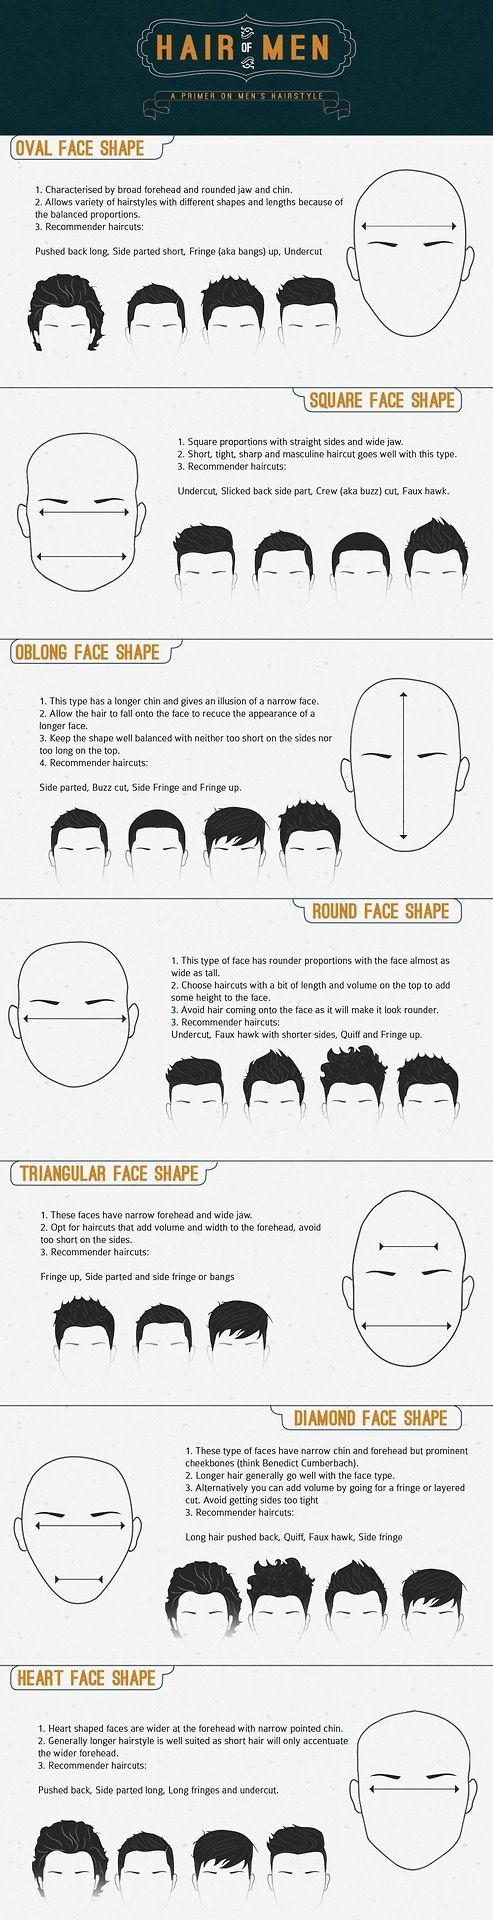 Haircut model based on your face shape.